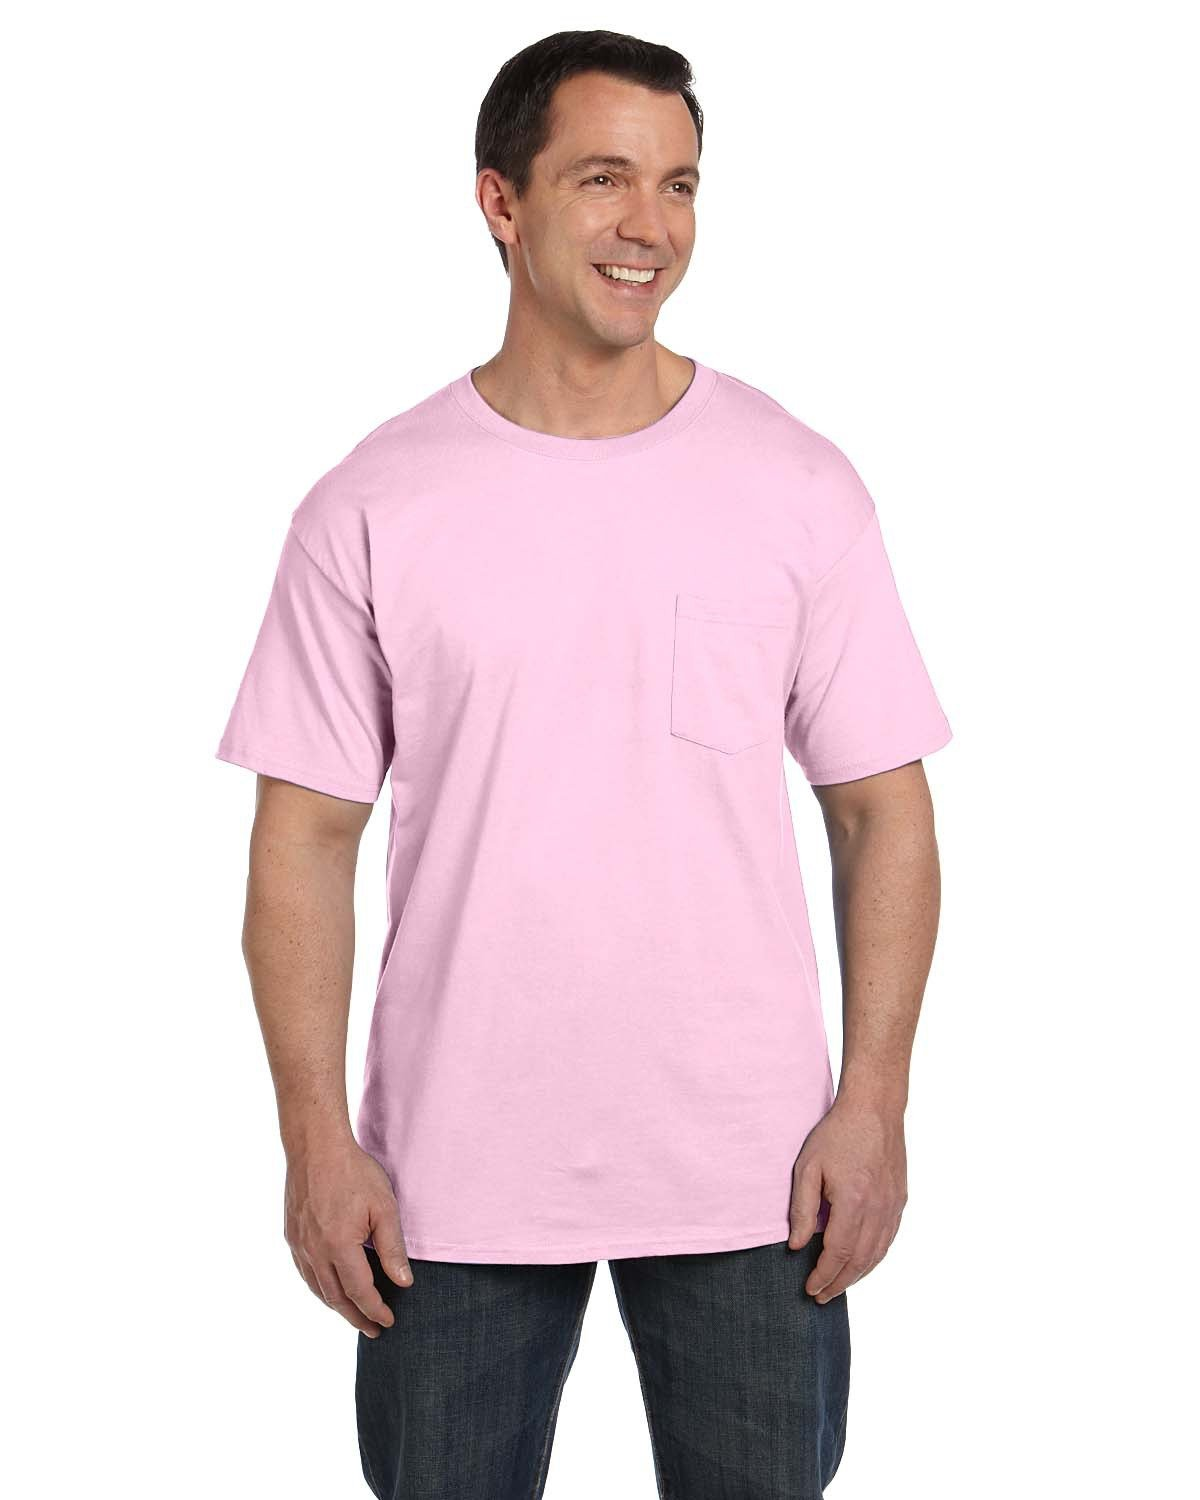 Hanes Adult Beefy-T® with Pocket PALE PINK